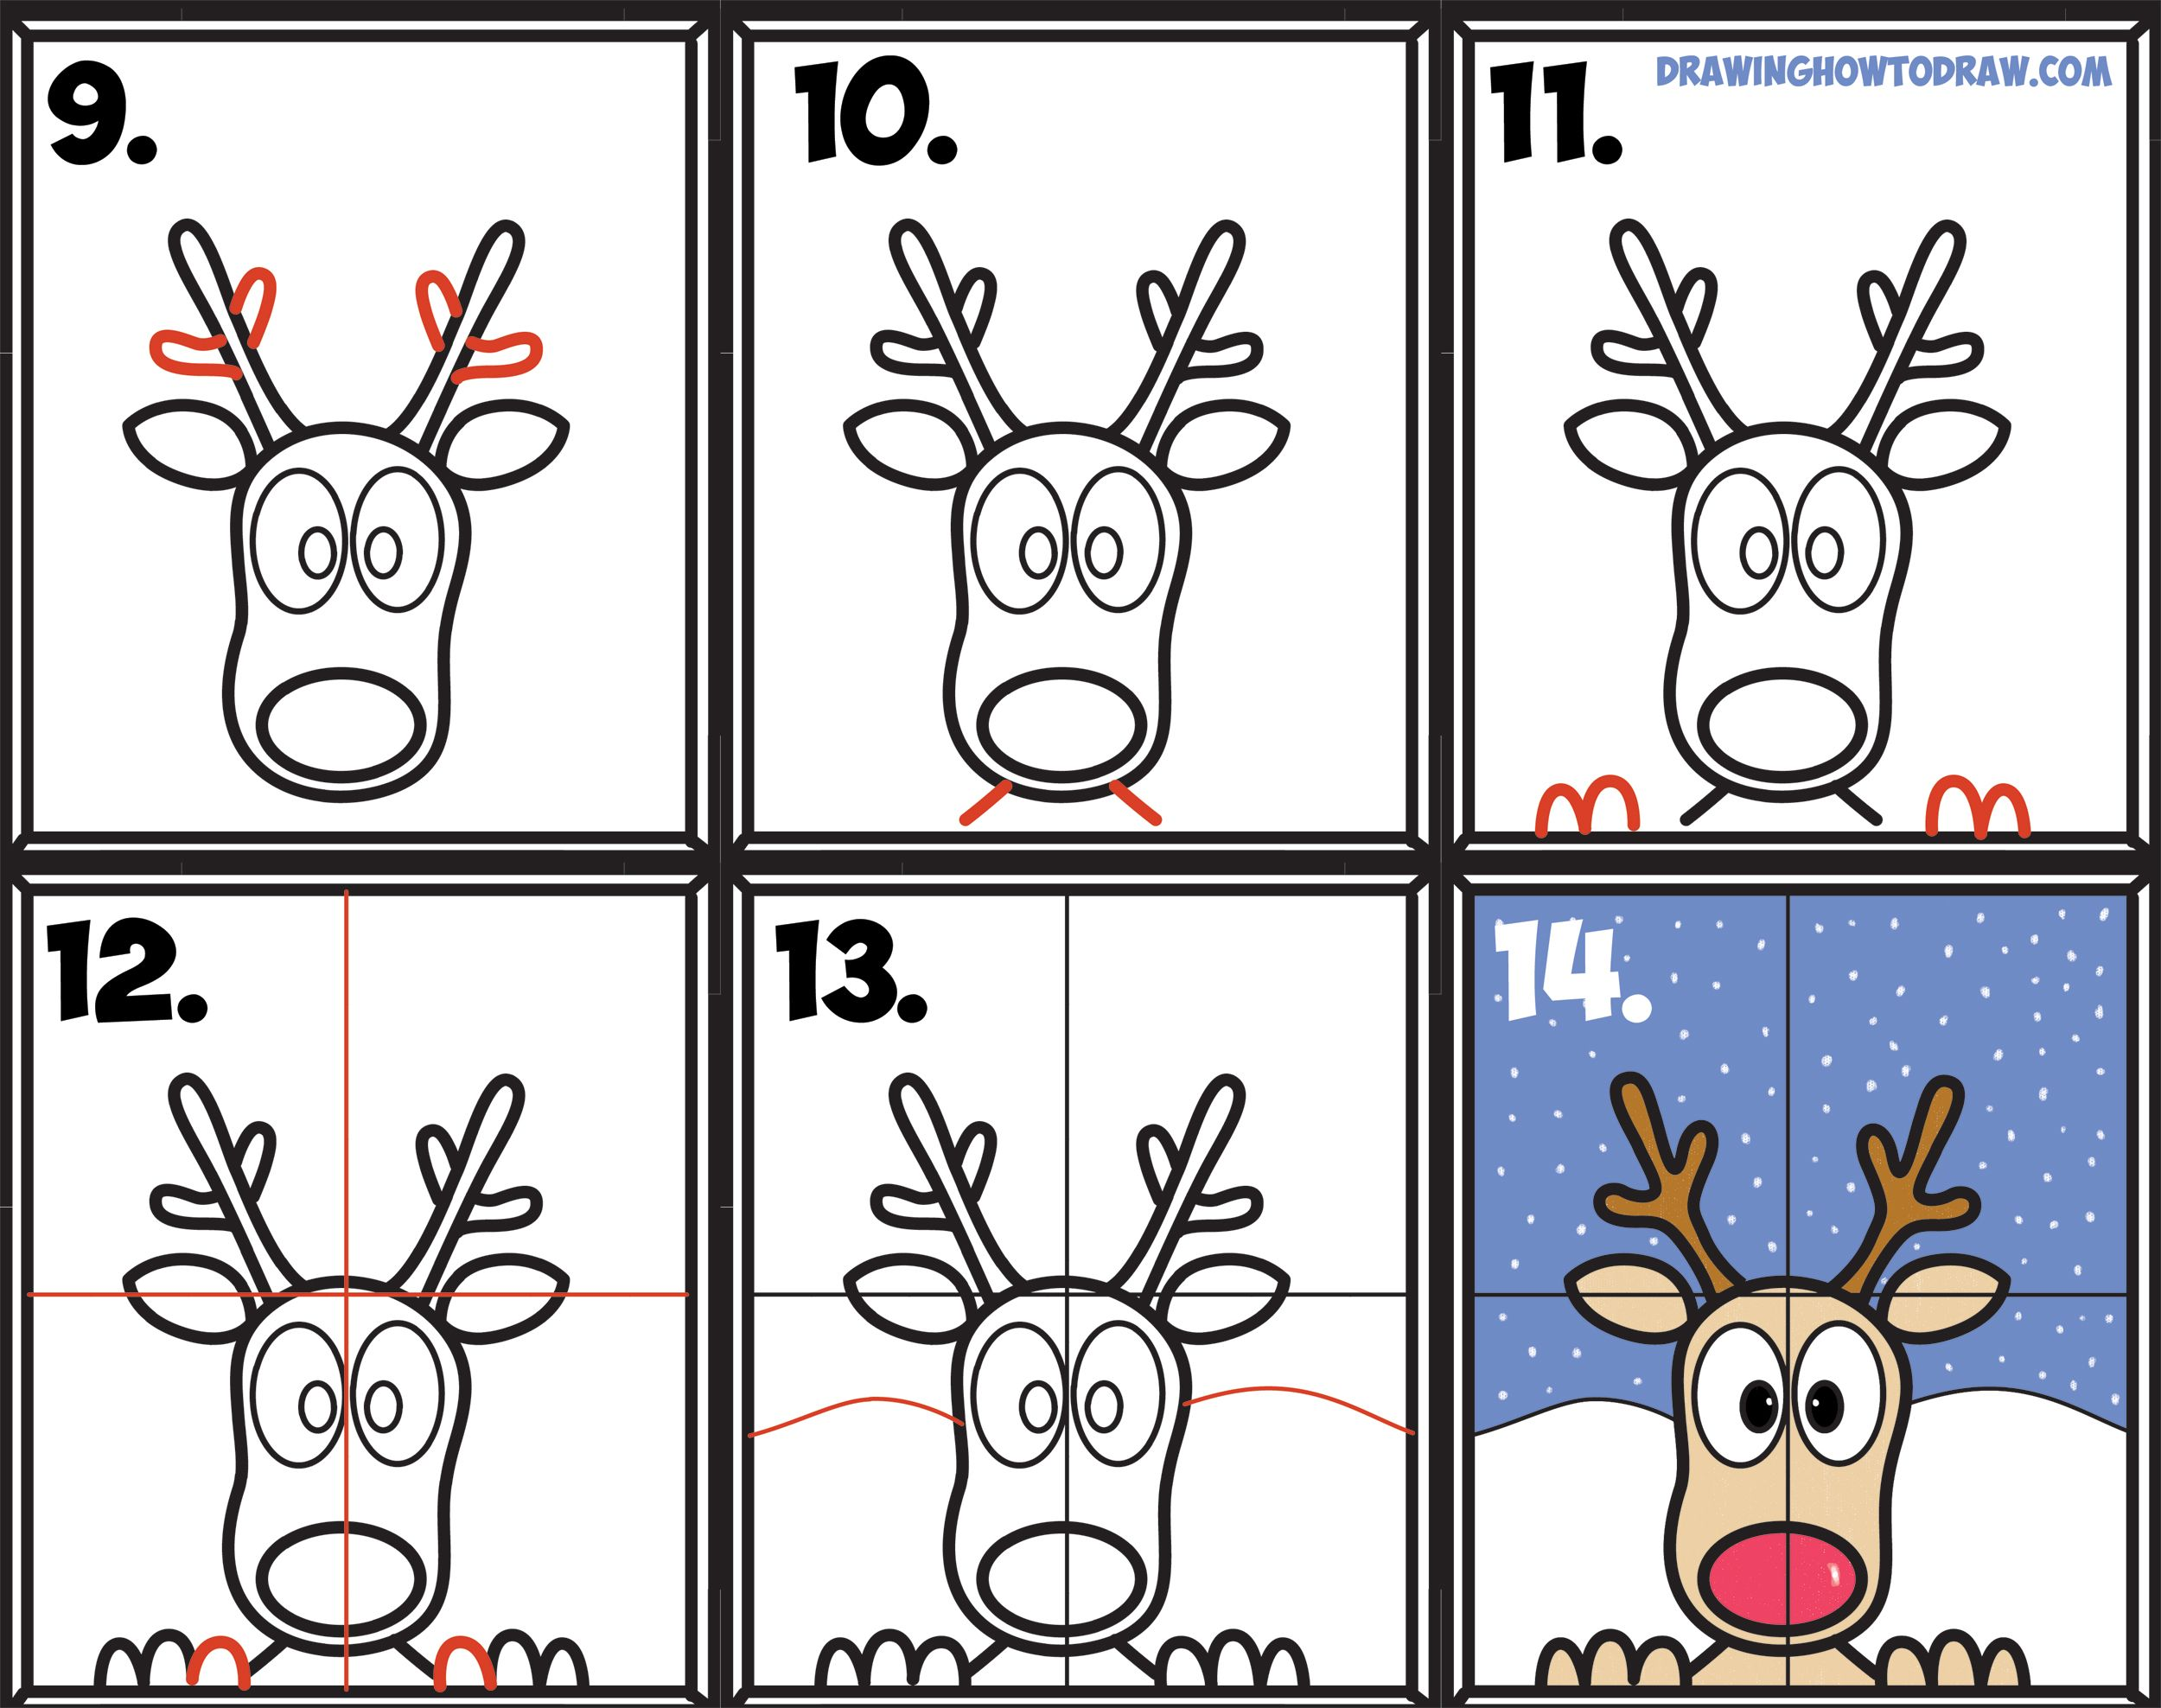 How To Draw Rudolph The Red Nosed Reindeer Looking In